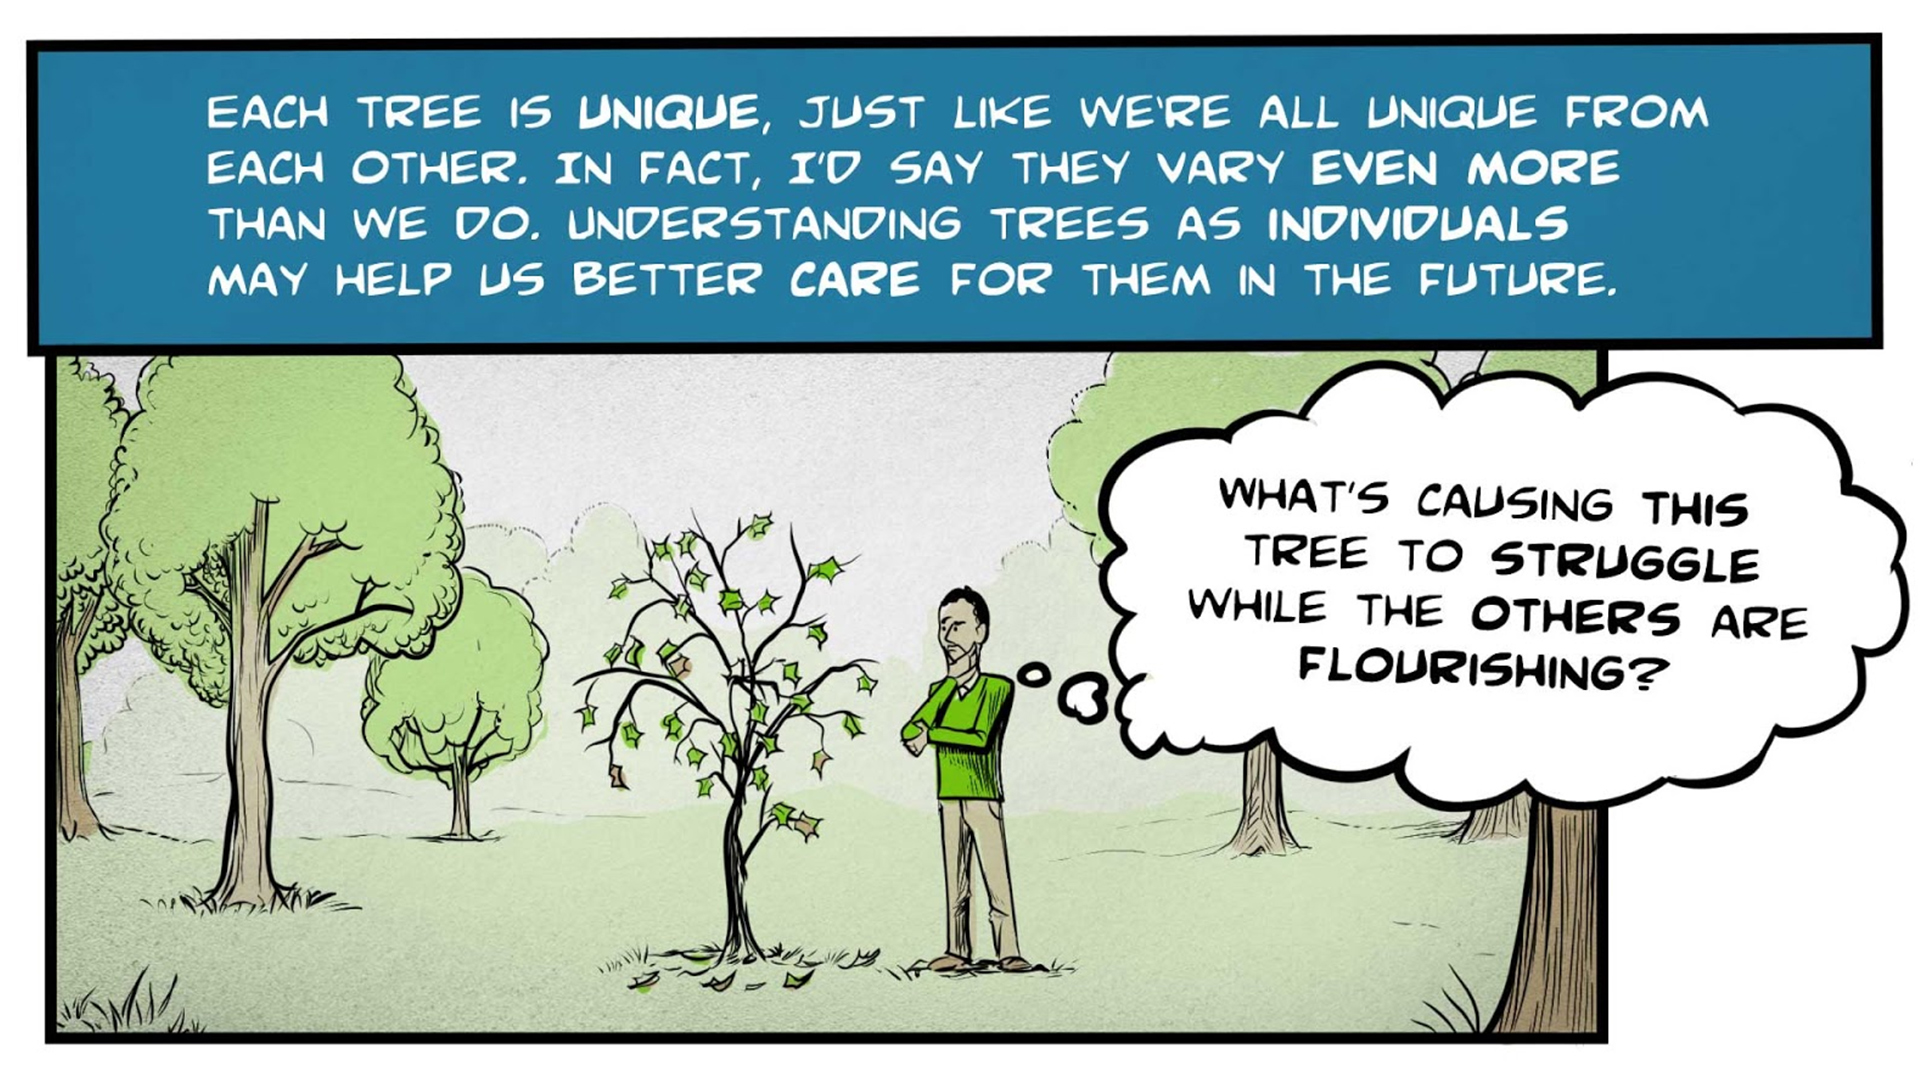 """Felix, the narrator, says, """"Each tree is unique, just like we're all unique from each other. In fact, I'd say they vary even more than we do. Understanding trees as individuals may help us better care for them in the future. """" He stands in a forest, looking at an unhealthy-looking tree with drooping branches and sparse leaves. He thinks to himself, """"What's causing this tree to struggle while the others are flourishing?"""""""